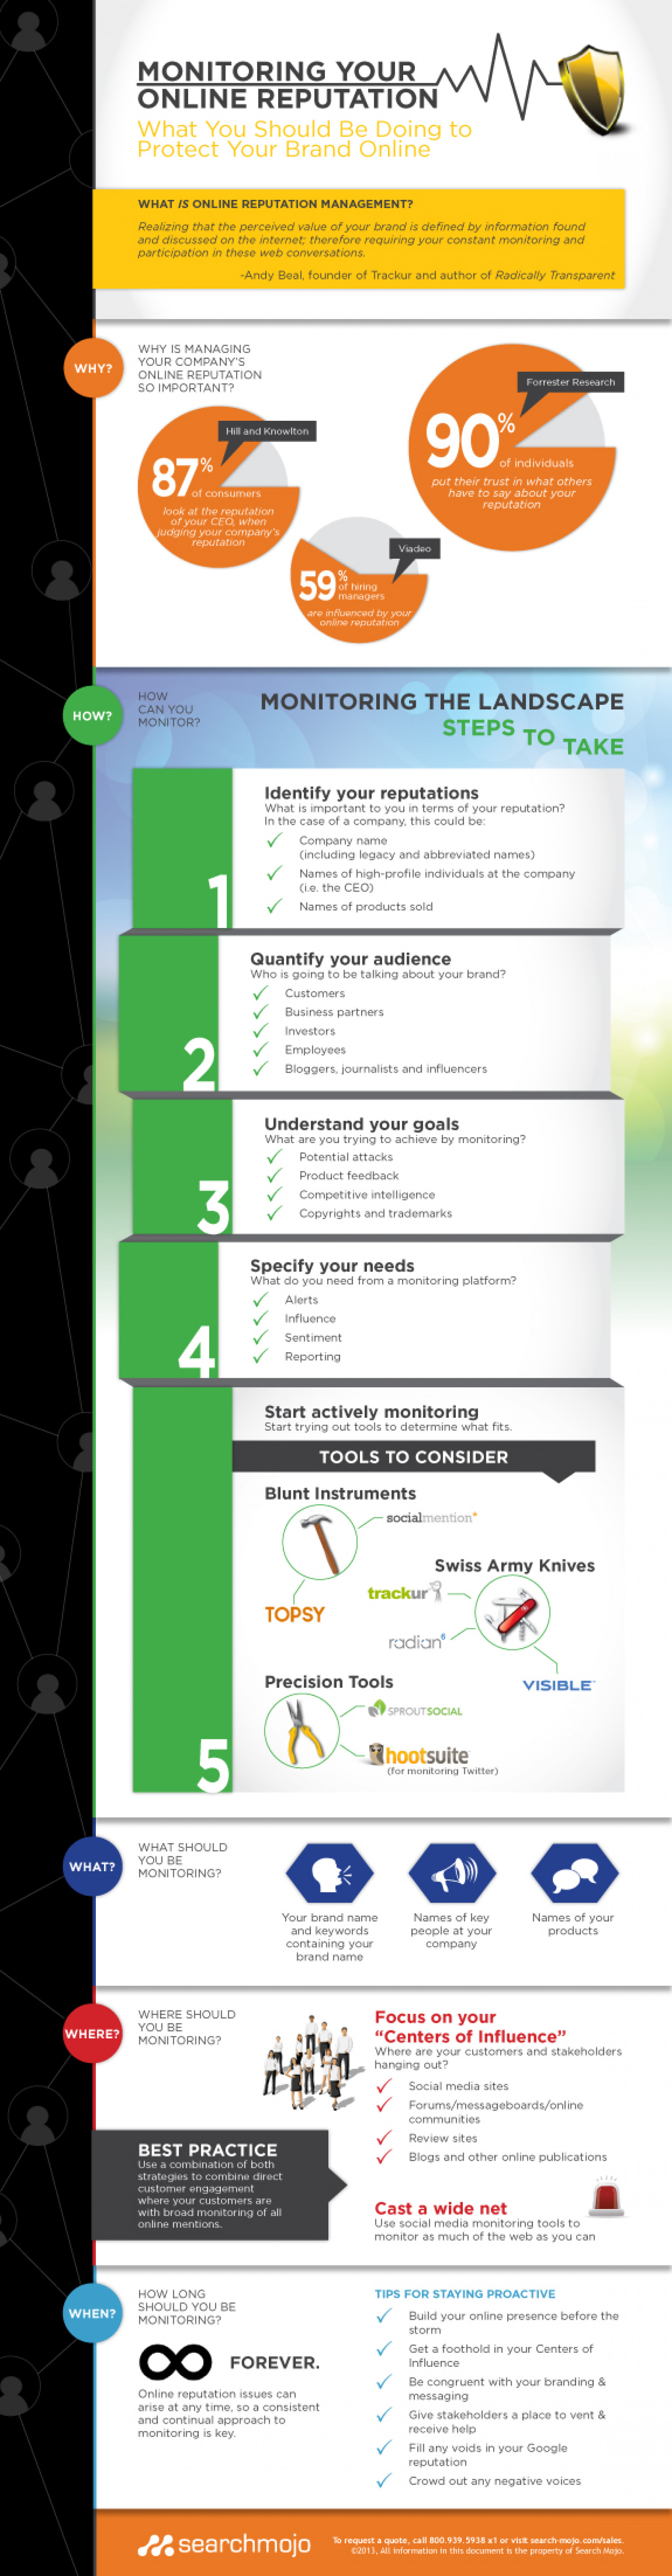 """Monitoring Your Online Reputation: What You Should Be Doing to Protect Your Brand Online"""" Infographic"""